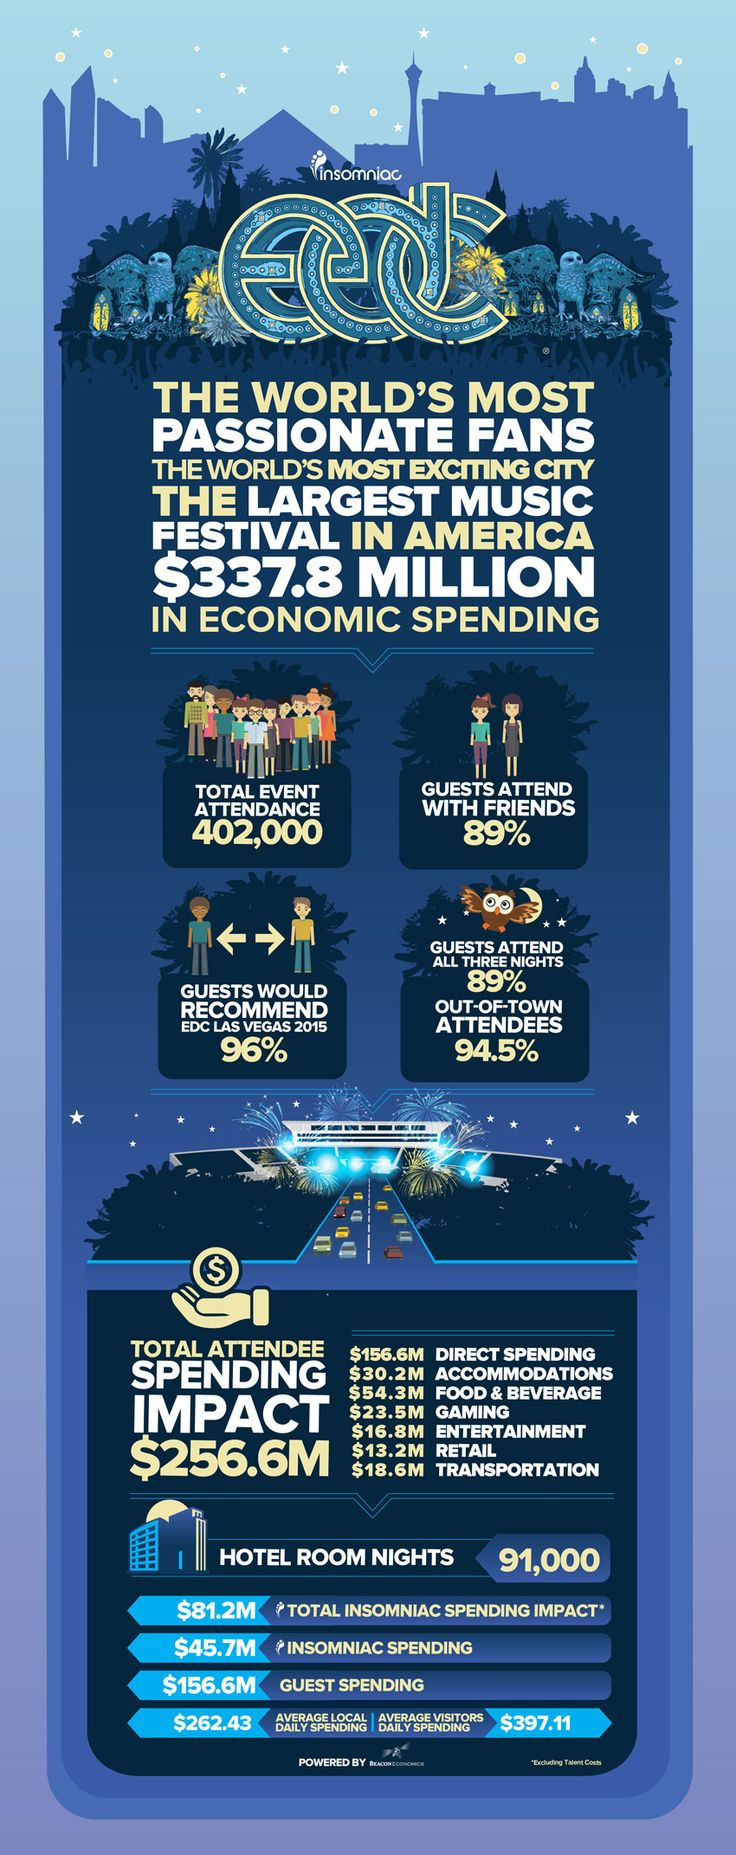 Insomniac Events announced today that this past year's Electric Daisy Carnival in Las Vegas generated more than $337 million to the economy in Clark County